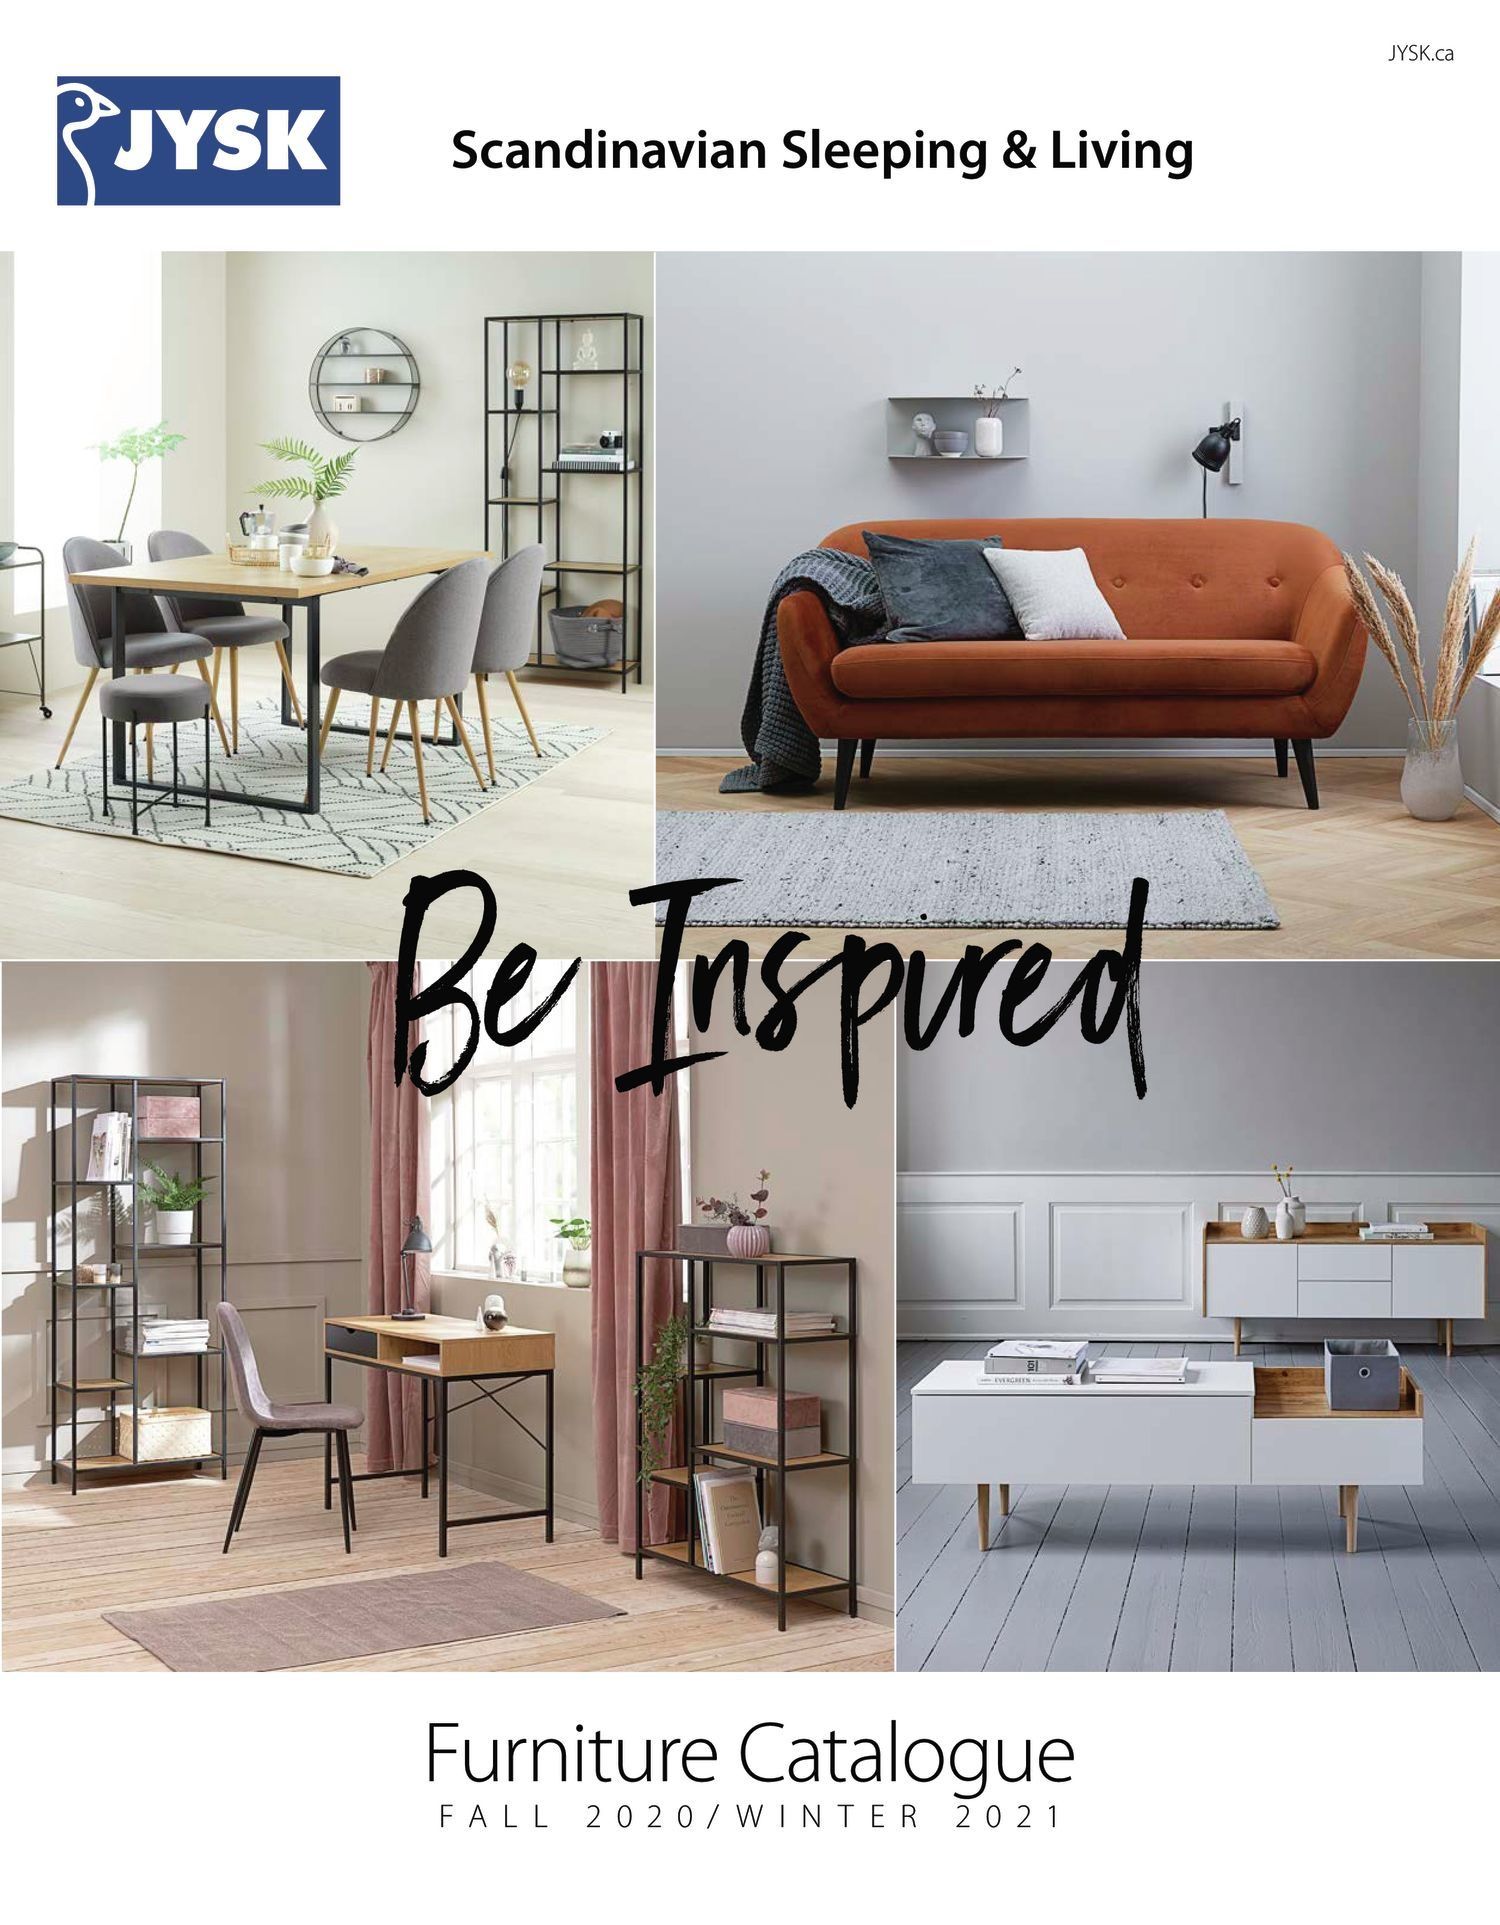 Jysk - Furniture Catalogue - Be Inspired